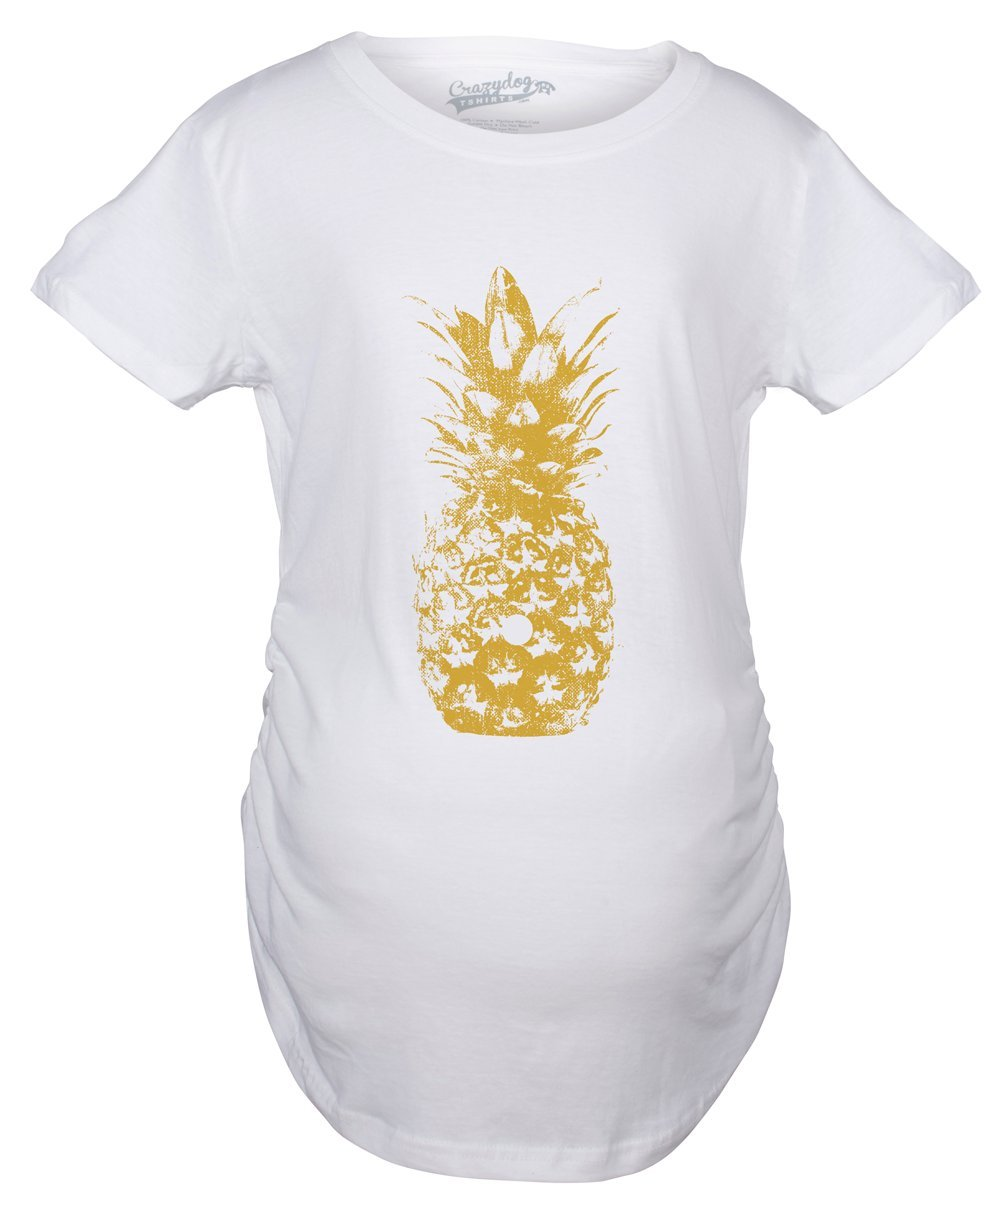 Maternity Pineapple Graphic Tshirt Cute Trendy Fruit Pregnancy Tee -S